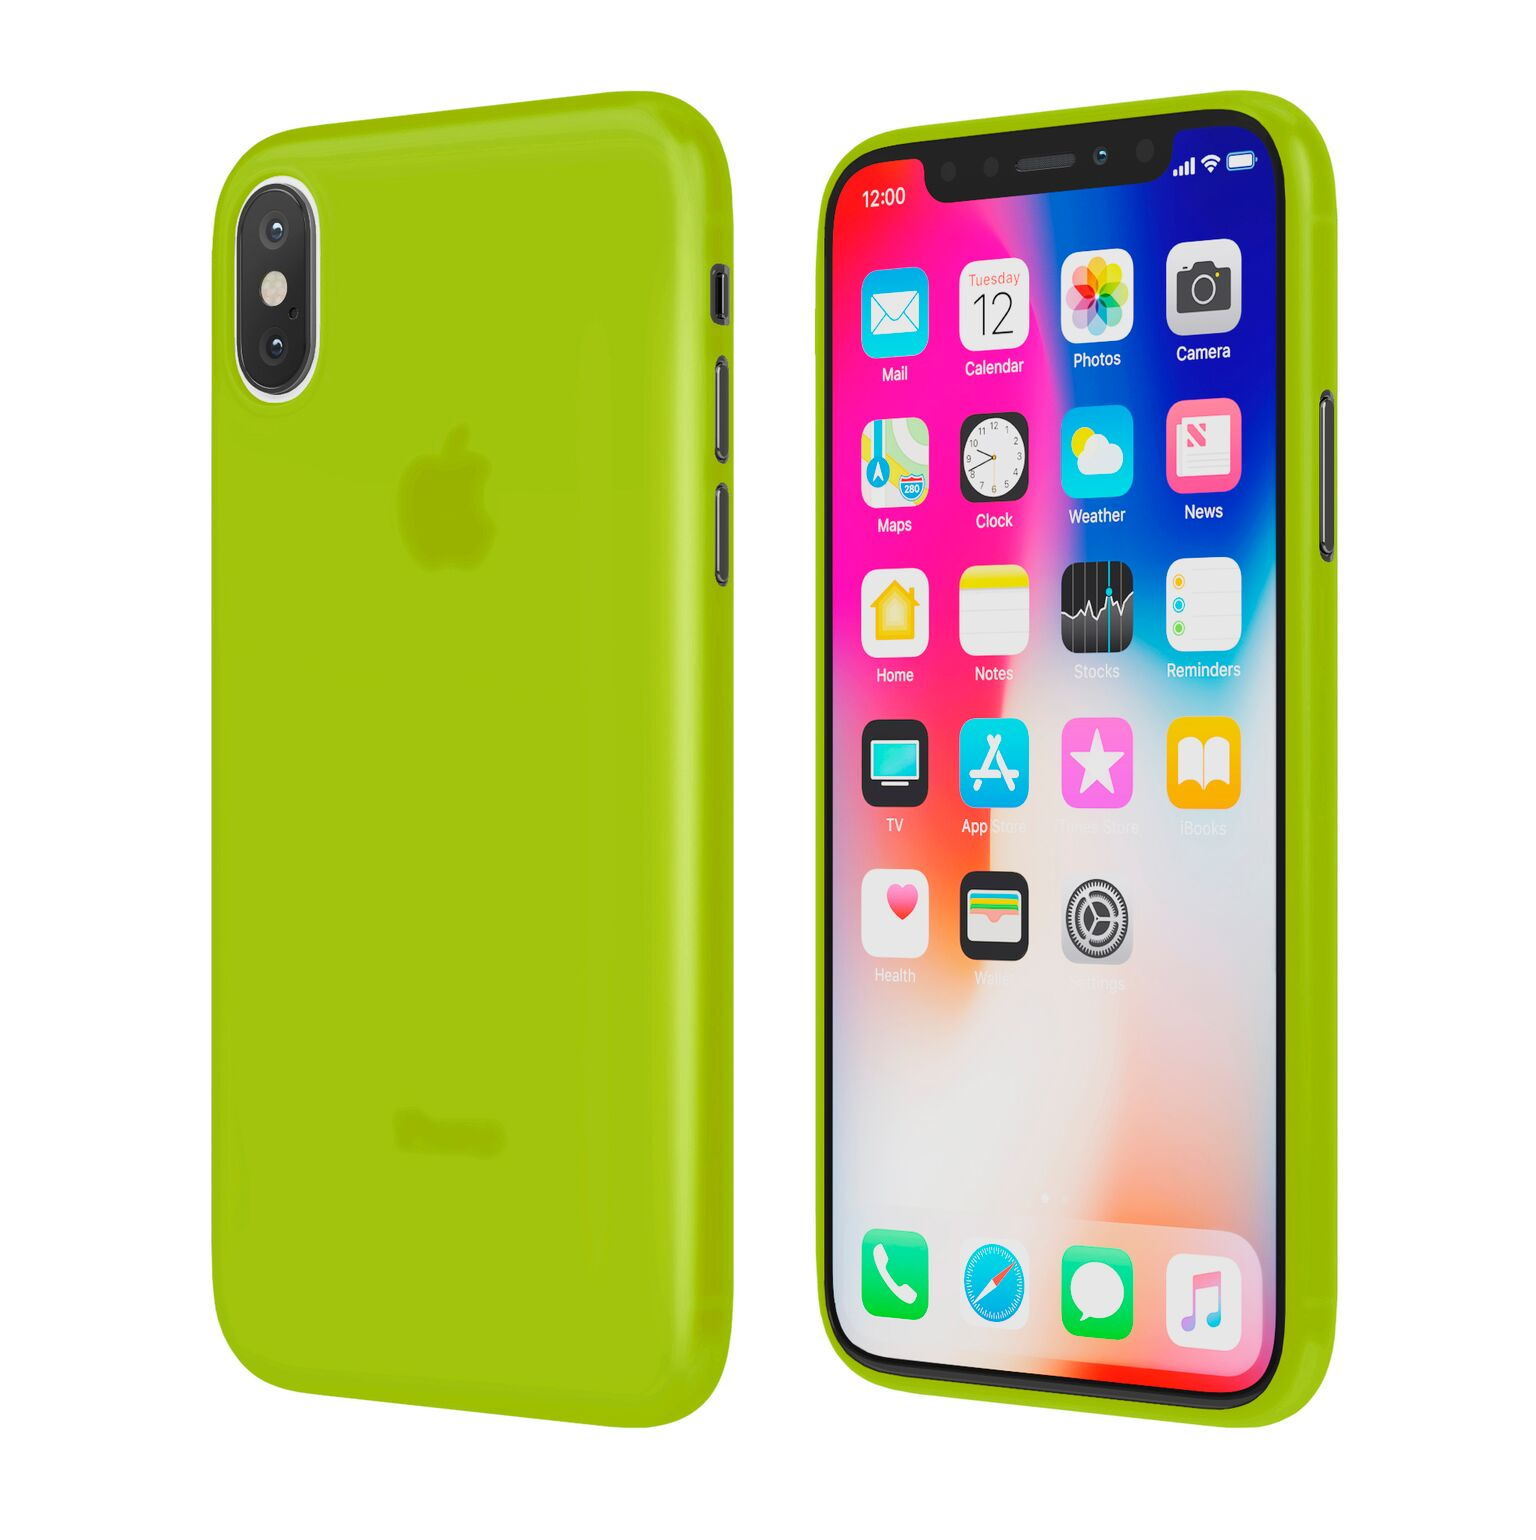 Чехол Vipe Flex для Apple iPhone X, 644-VPIPXFLEXYLW, желтый чехол vipe flex для apple iphone x 644 vpipxflexred красный